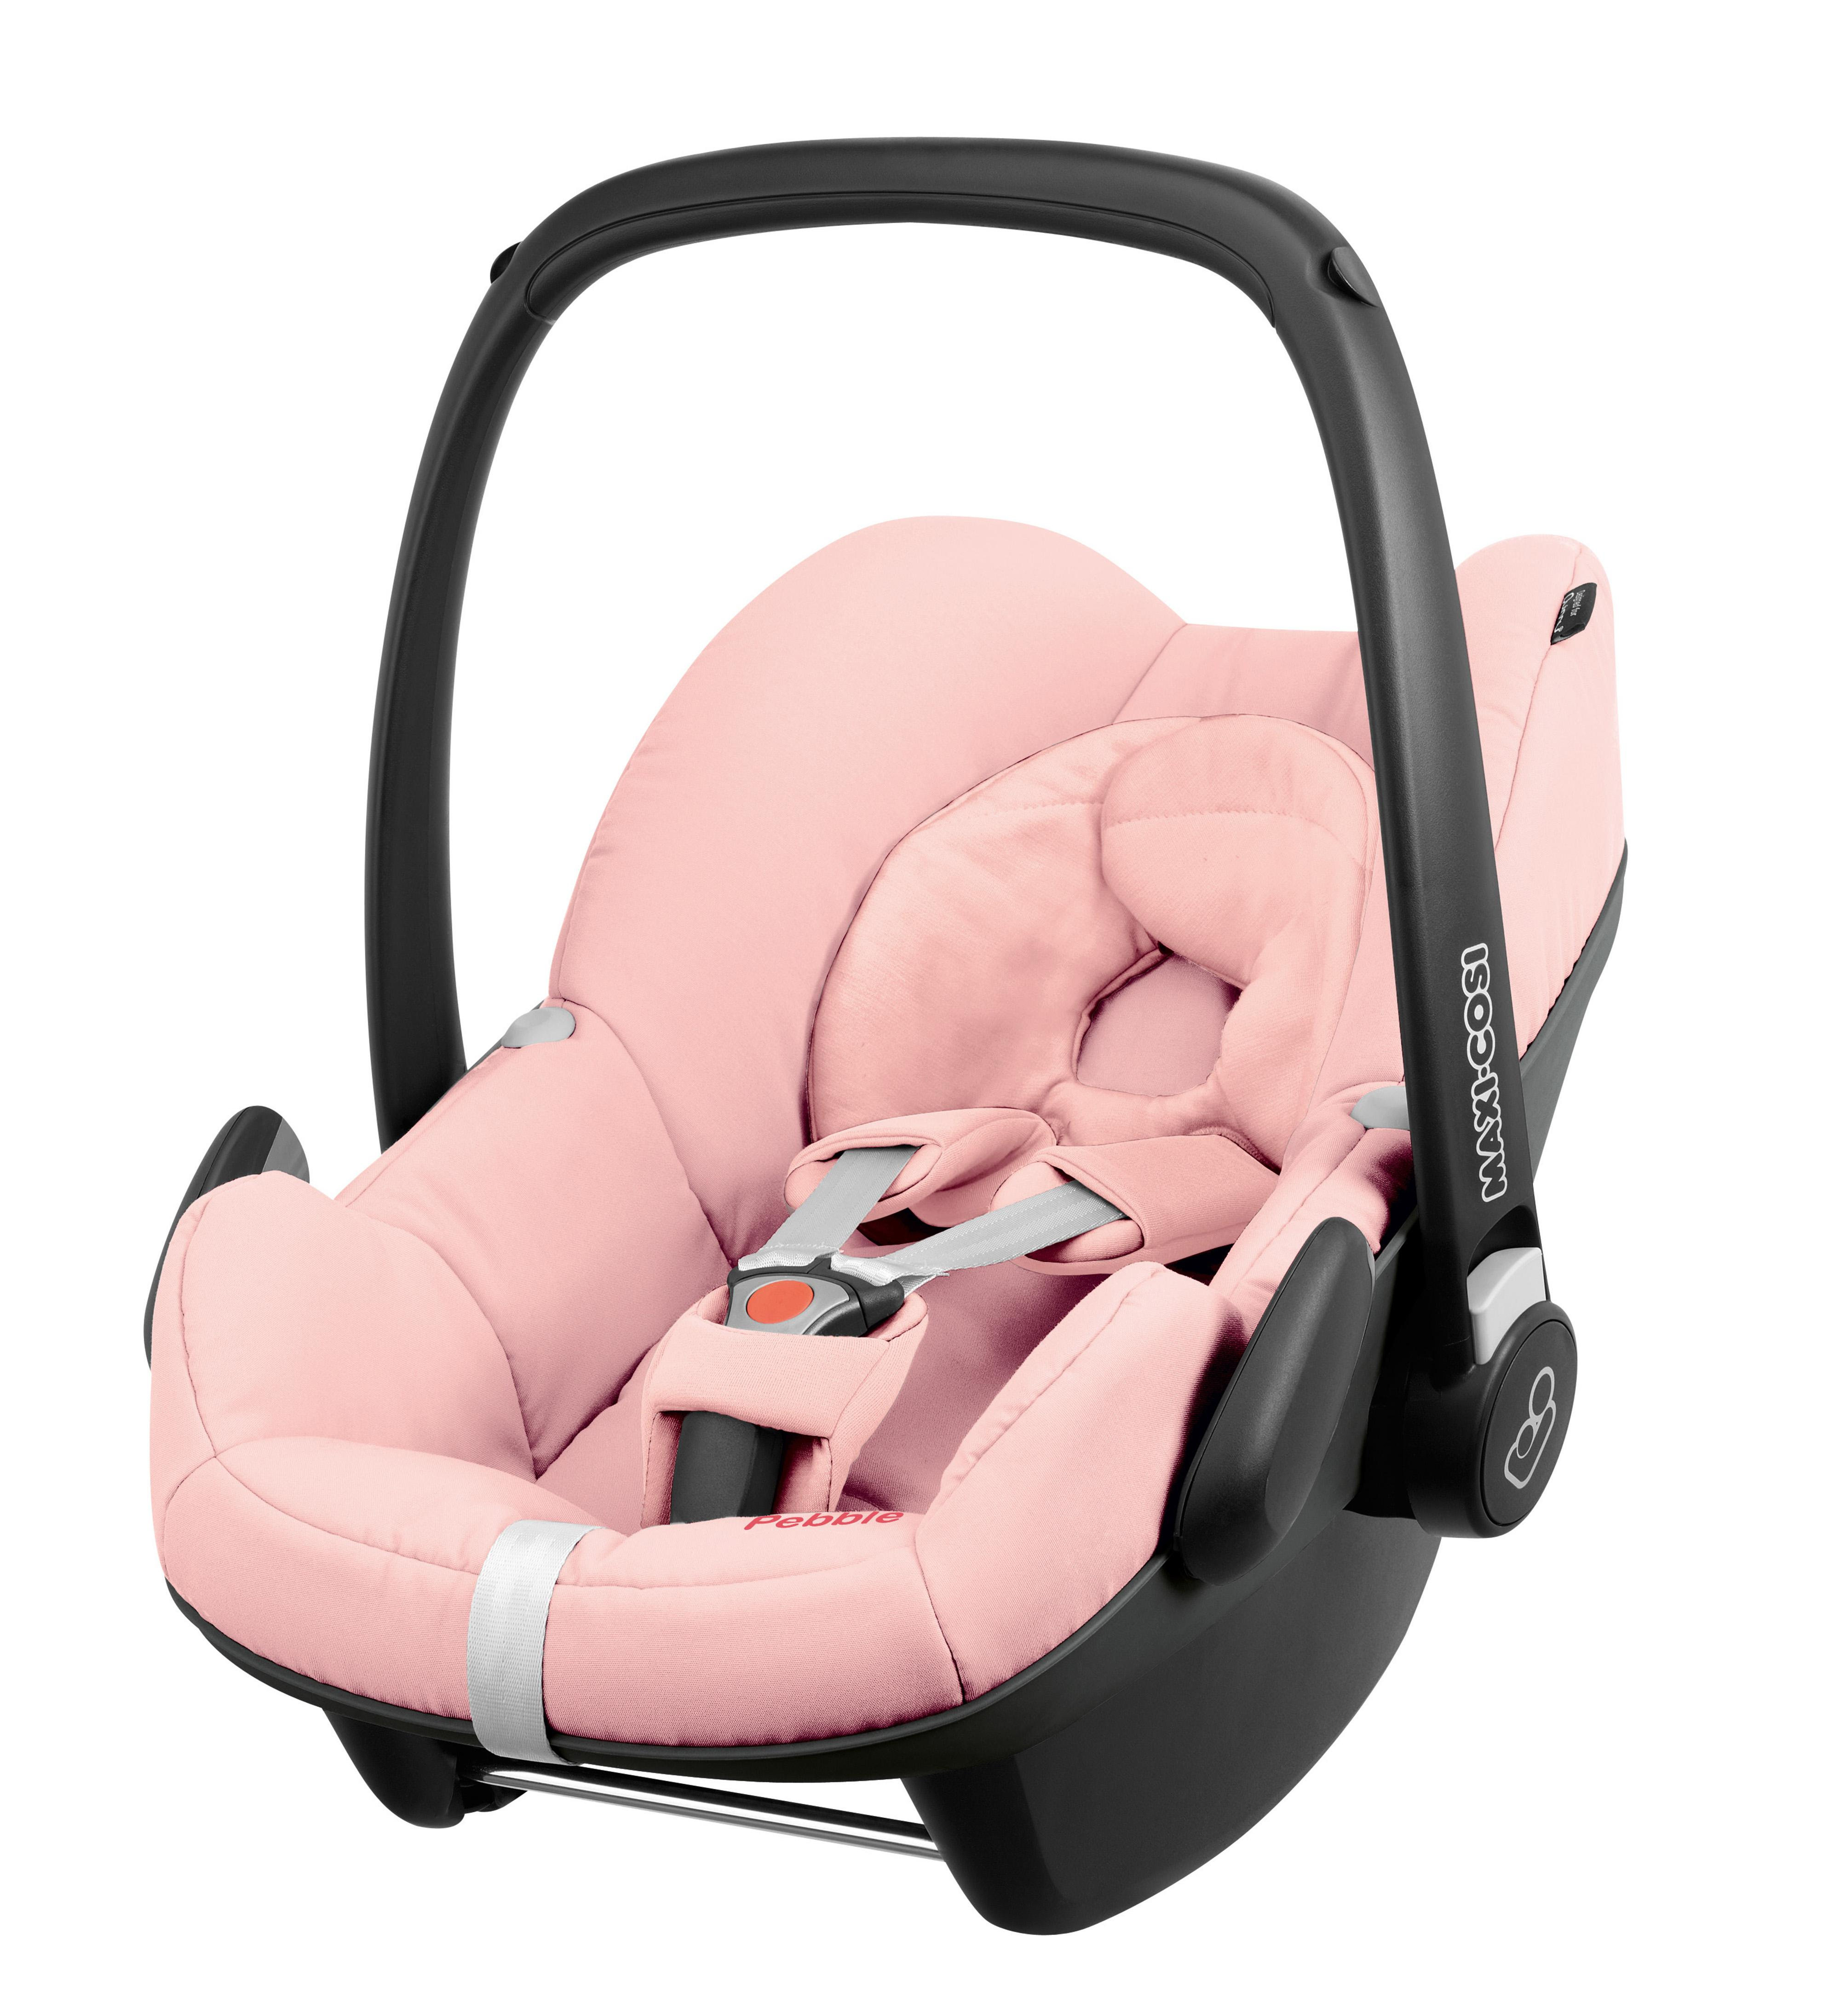 new maxi cosi pebble group 0 pink car seat birth 13kg. Black Bedroom Furniture Sets. Home Design Ideas